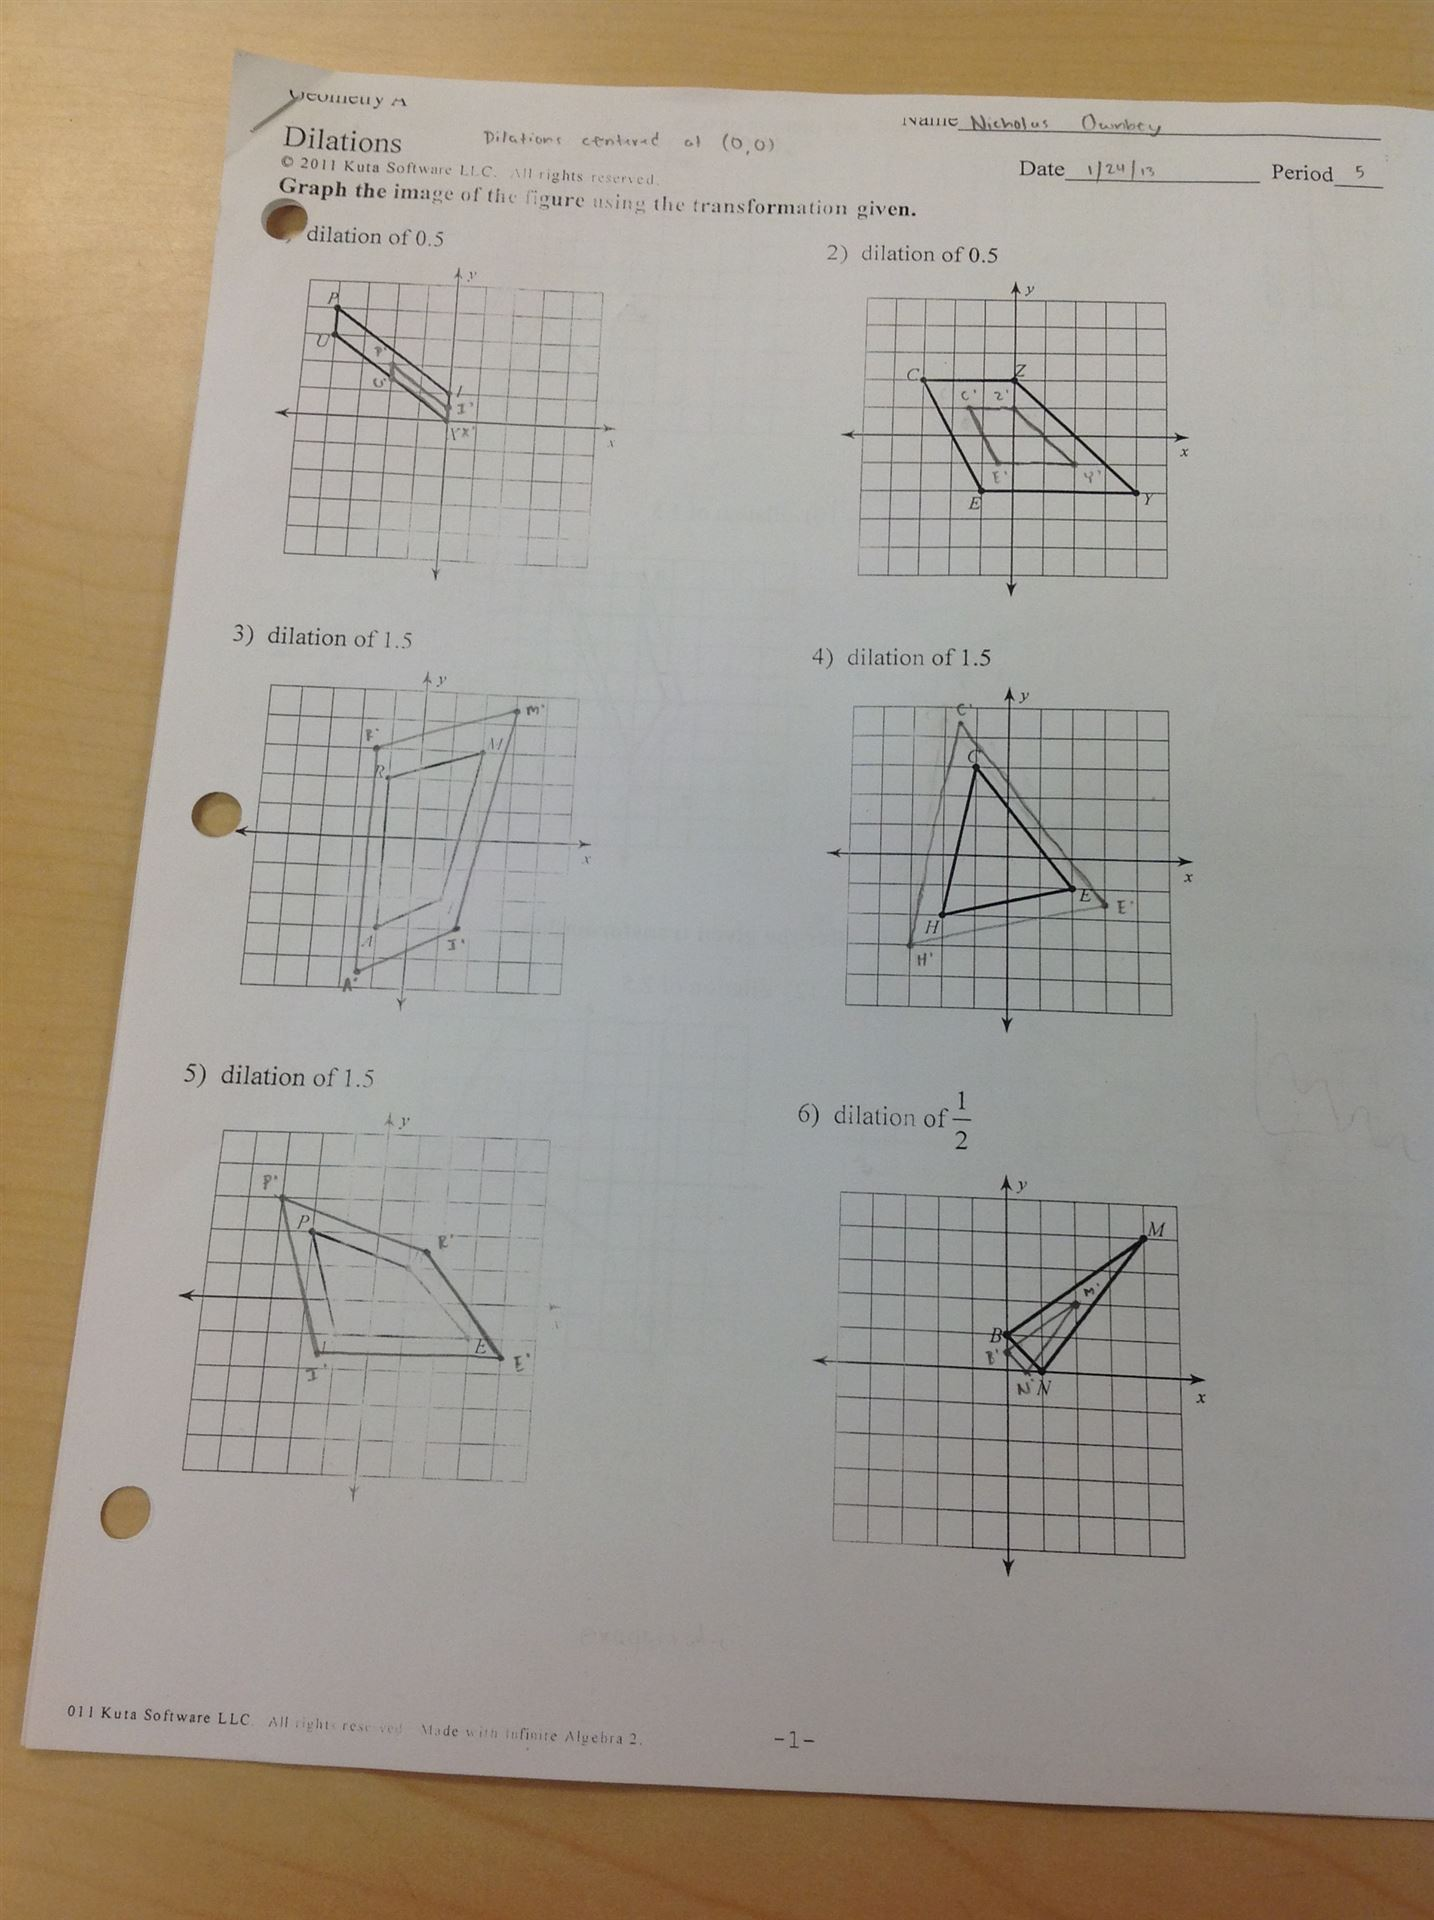 worksheet Dilations Worksheet 8th Grade south warren middle answers to dilations homework page 1